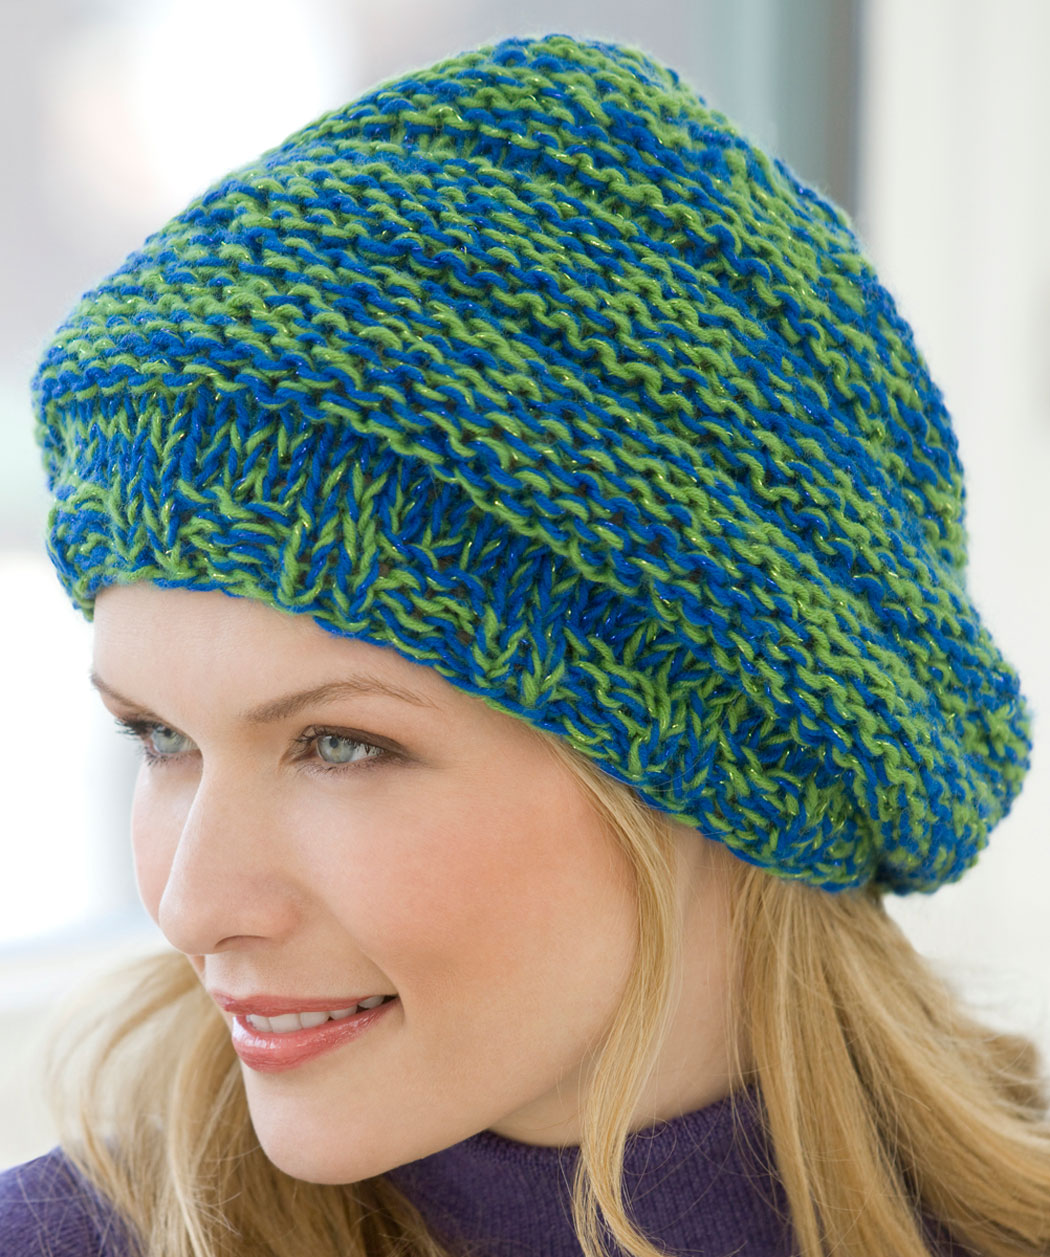 5 Knit Hat Patterns for Women - The Funky Stitch